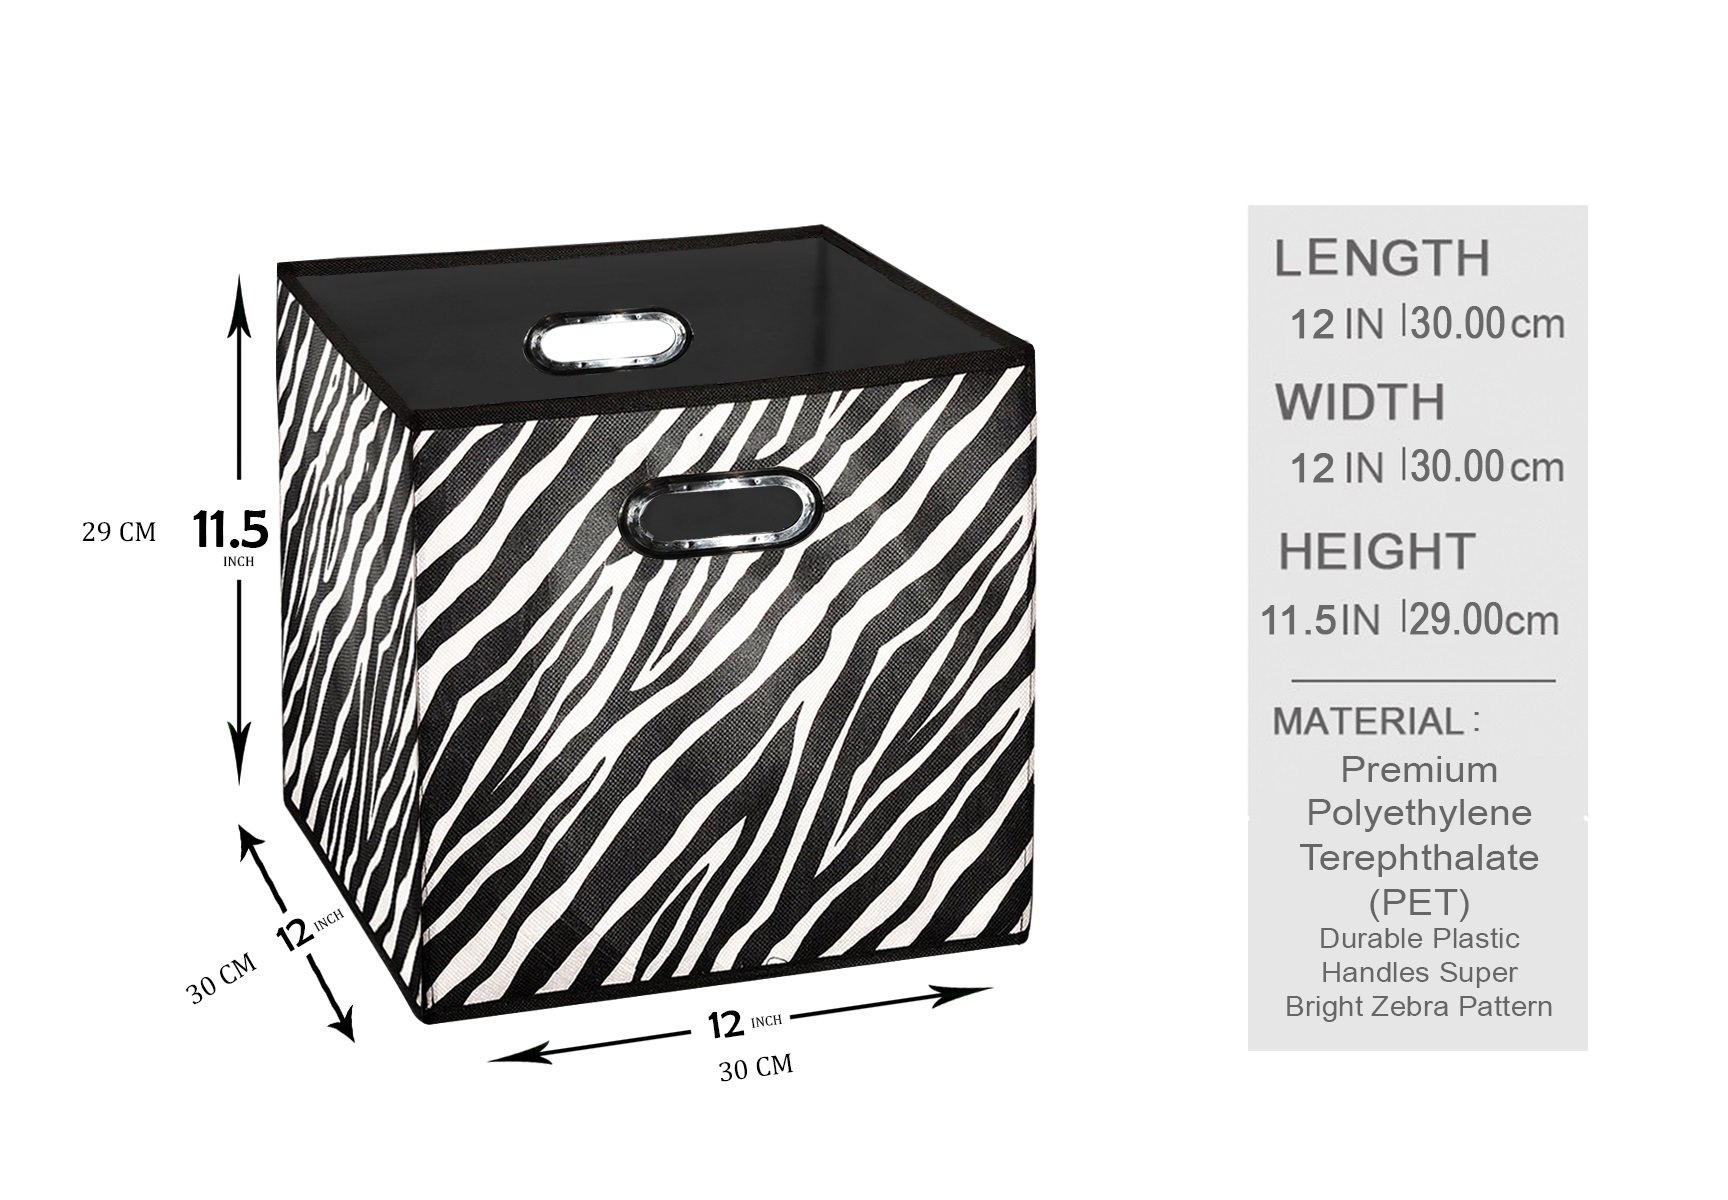 [10 Pack Zebra Pattern] Large Storage Bins, Containers, Boxes, Tote,  Baskets  Collapsible Storage Cubes For Household Offices Organization   Nursery Cubes  ...